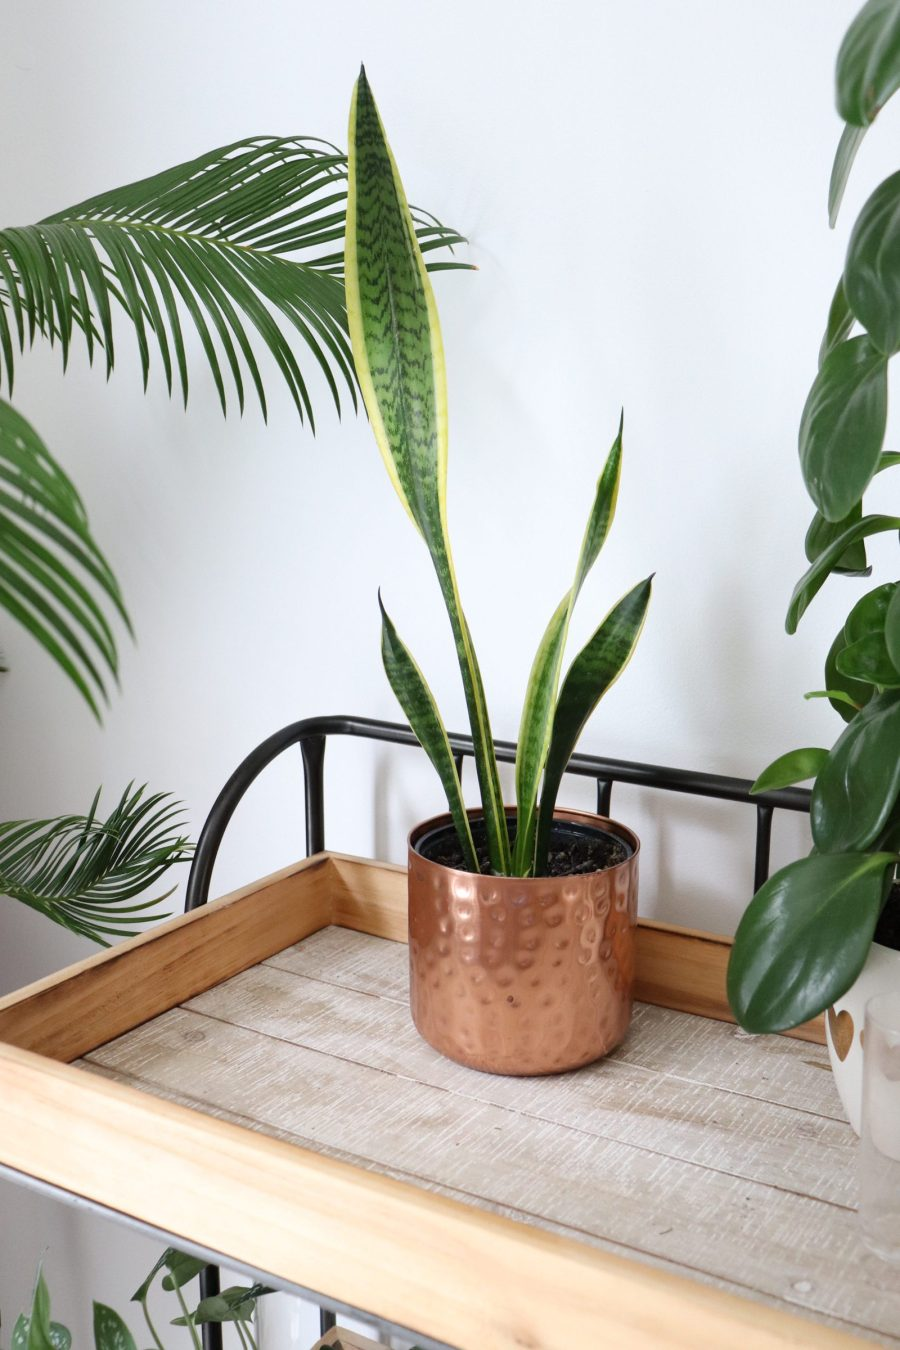 Low Maintenance Houseplants for Newbies